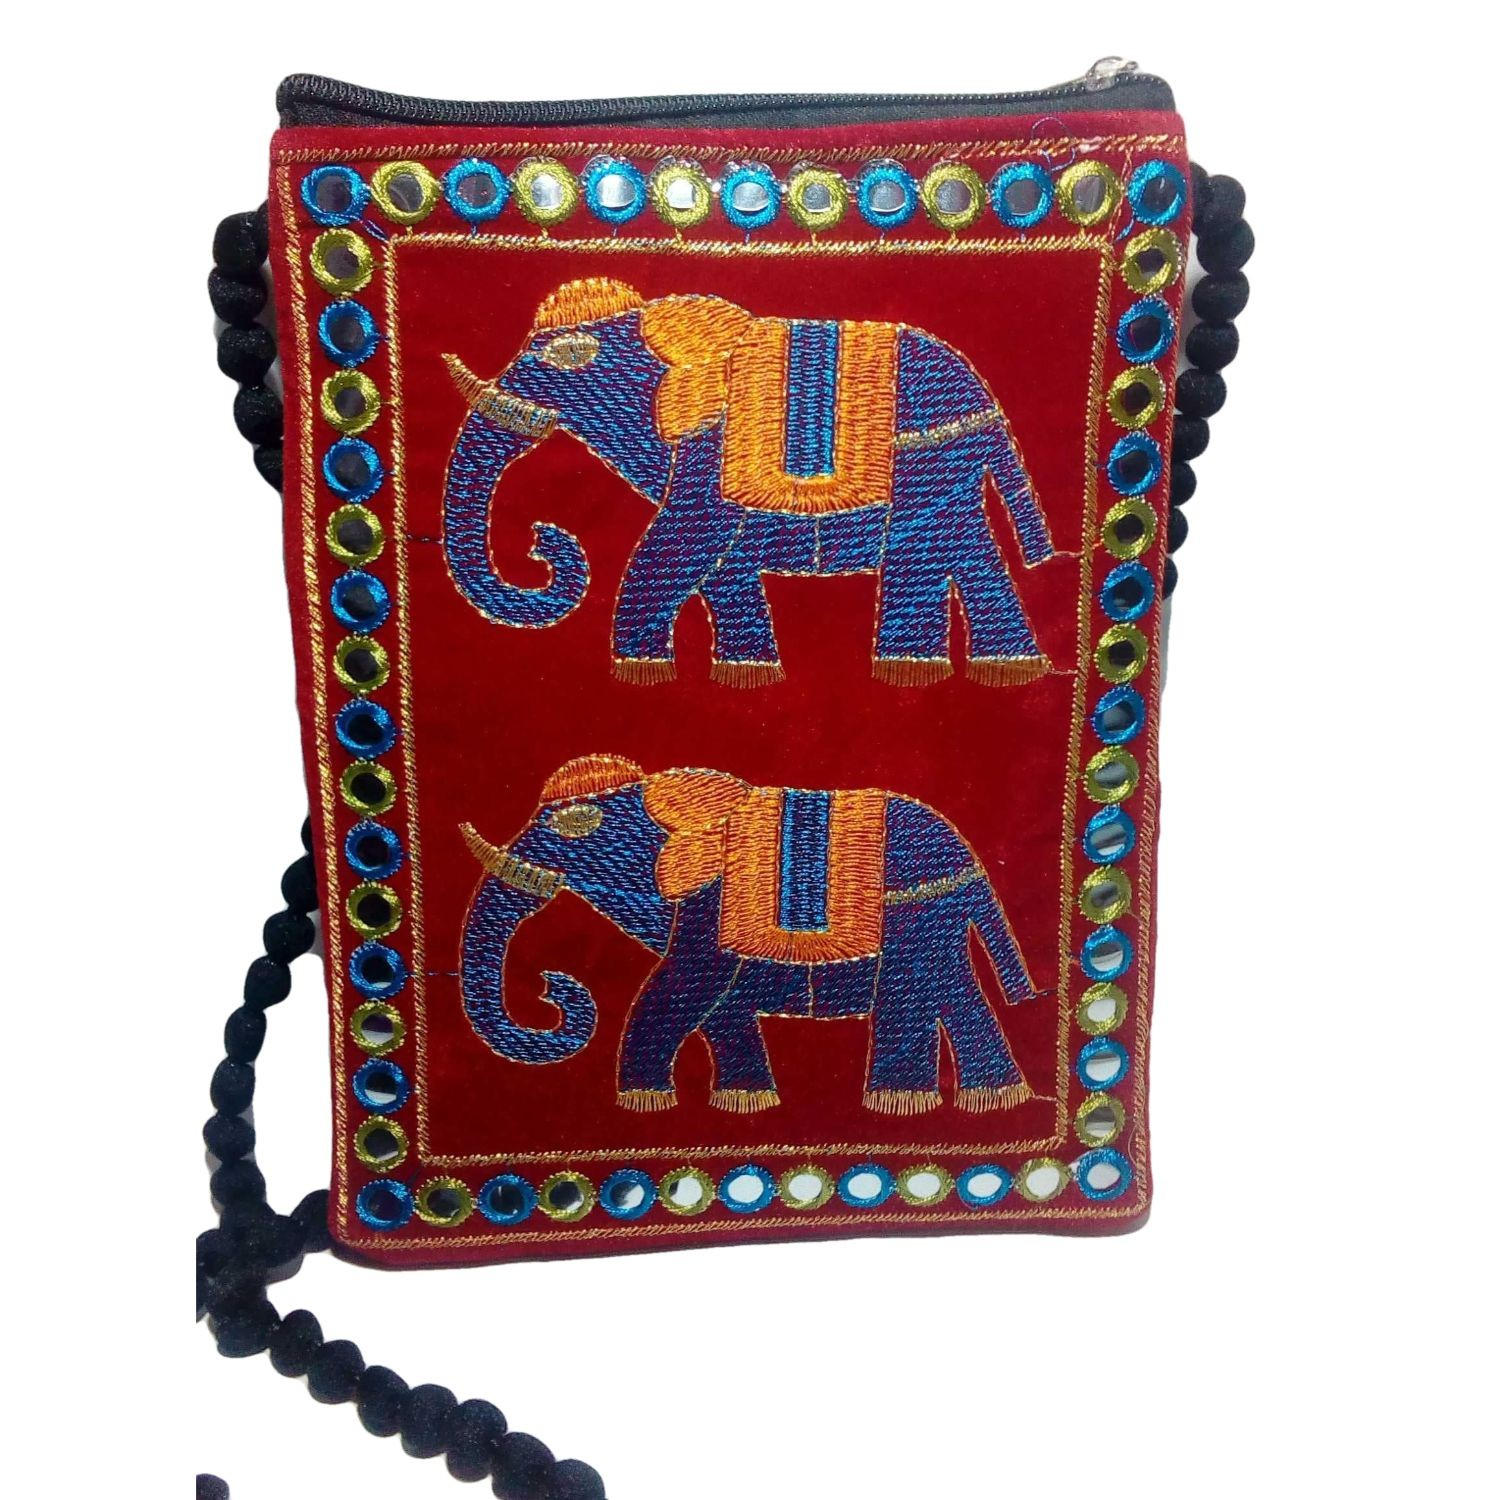 Handmade Excellent Red Genuine Sling Bag with embroidery work  by Women Self Help Groups of Rajasthan